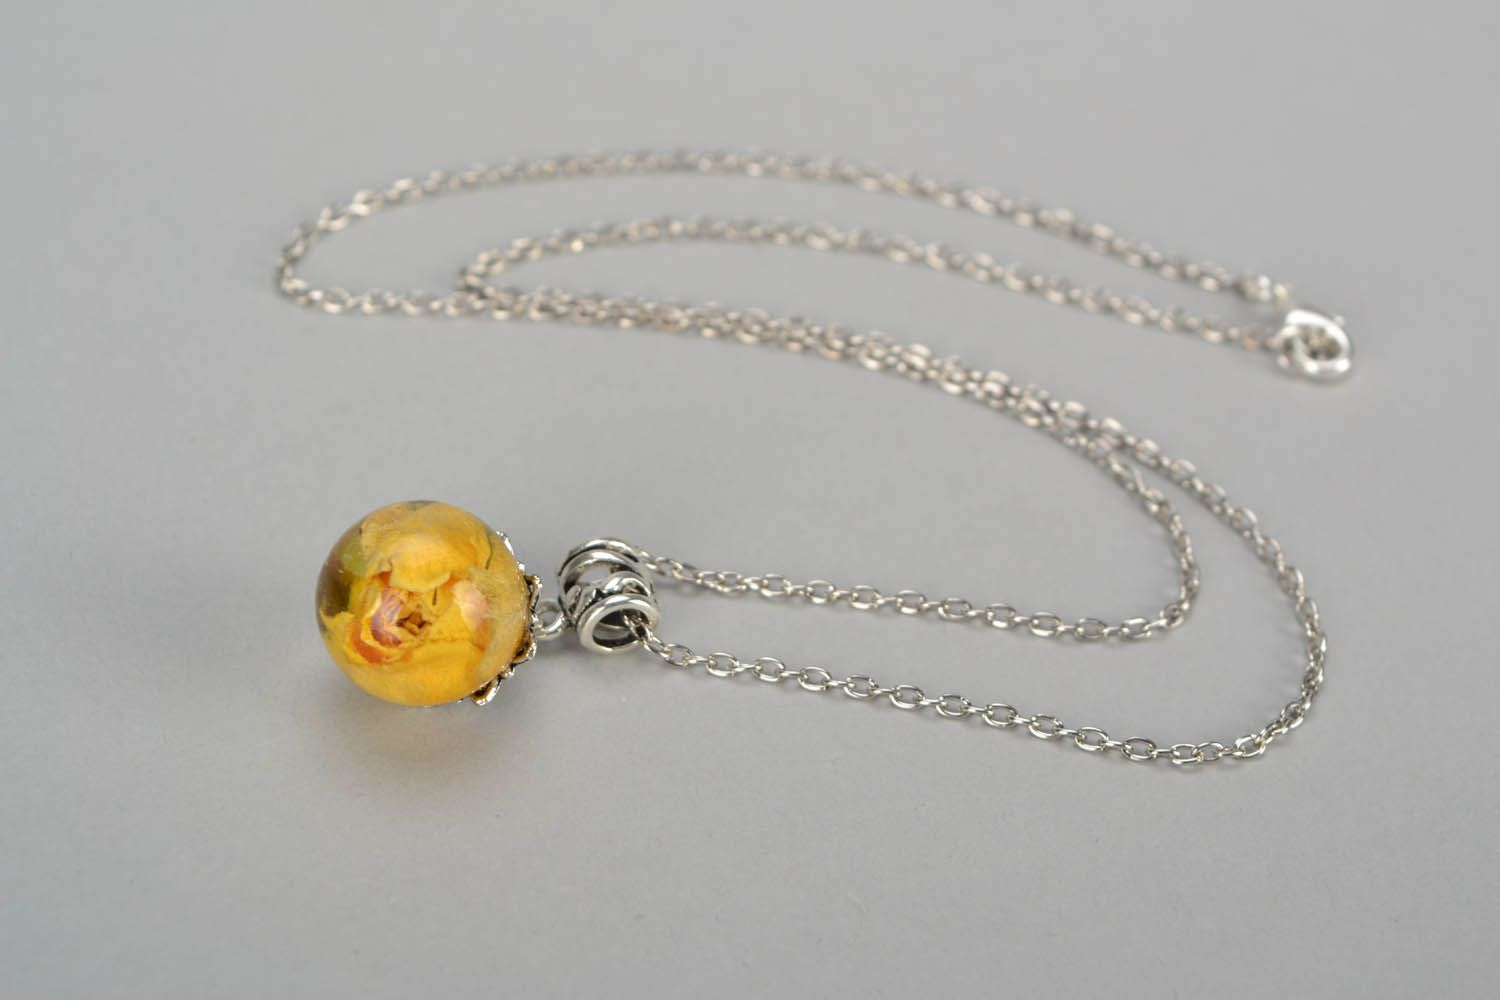 Pendant with rose on a long chain photo 3